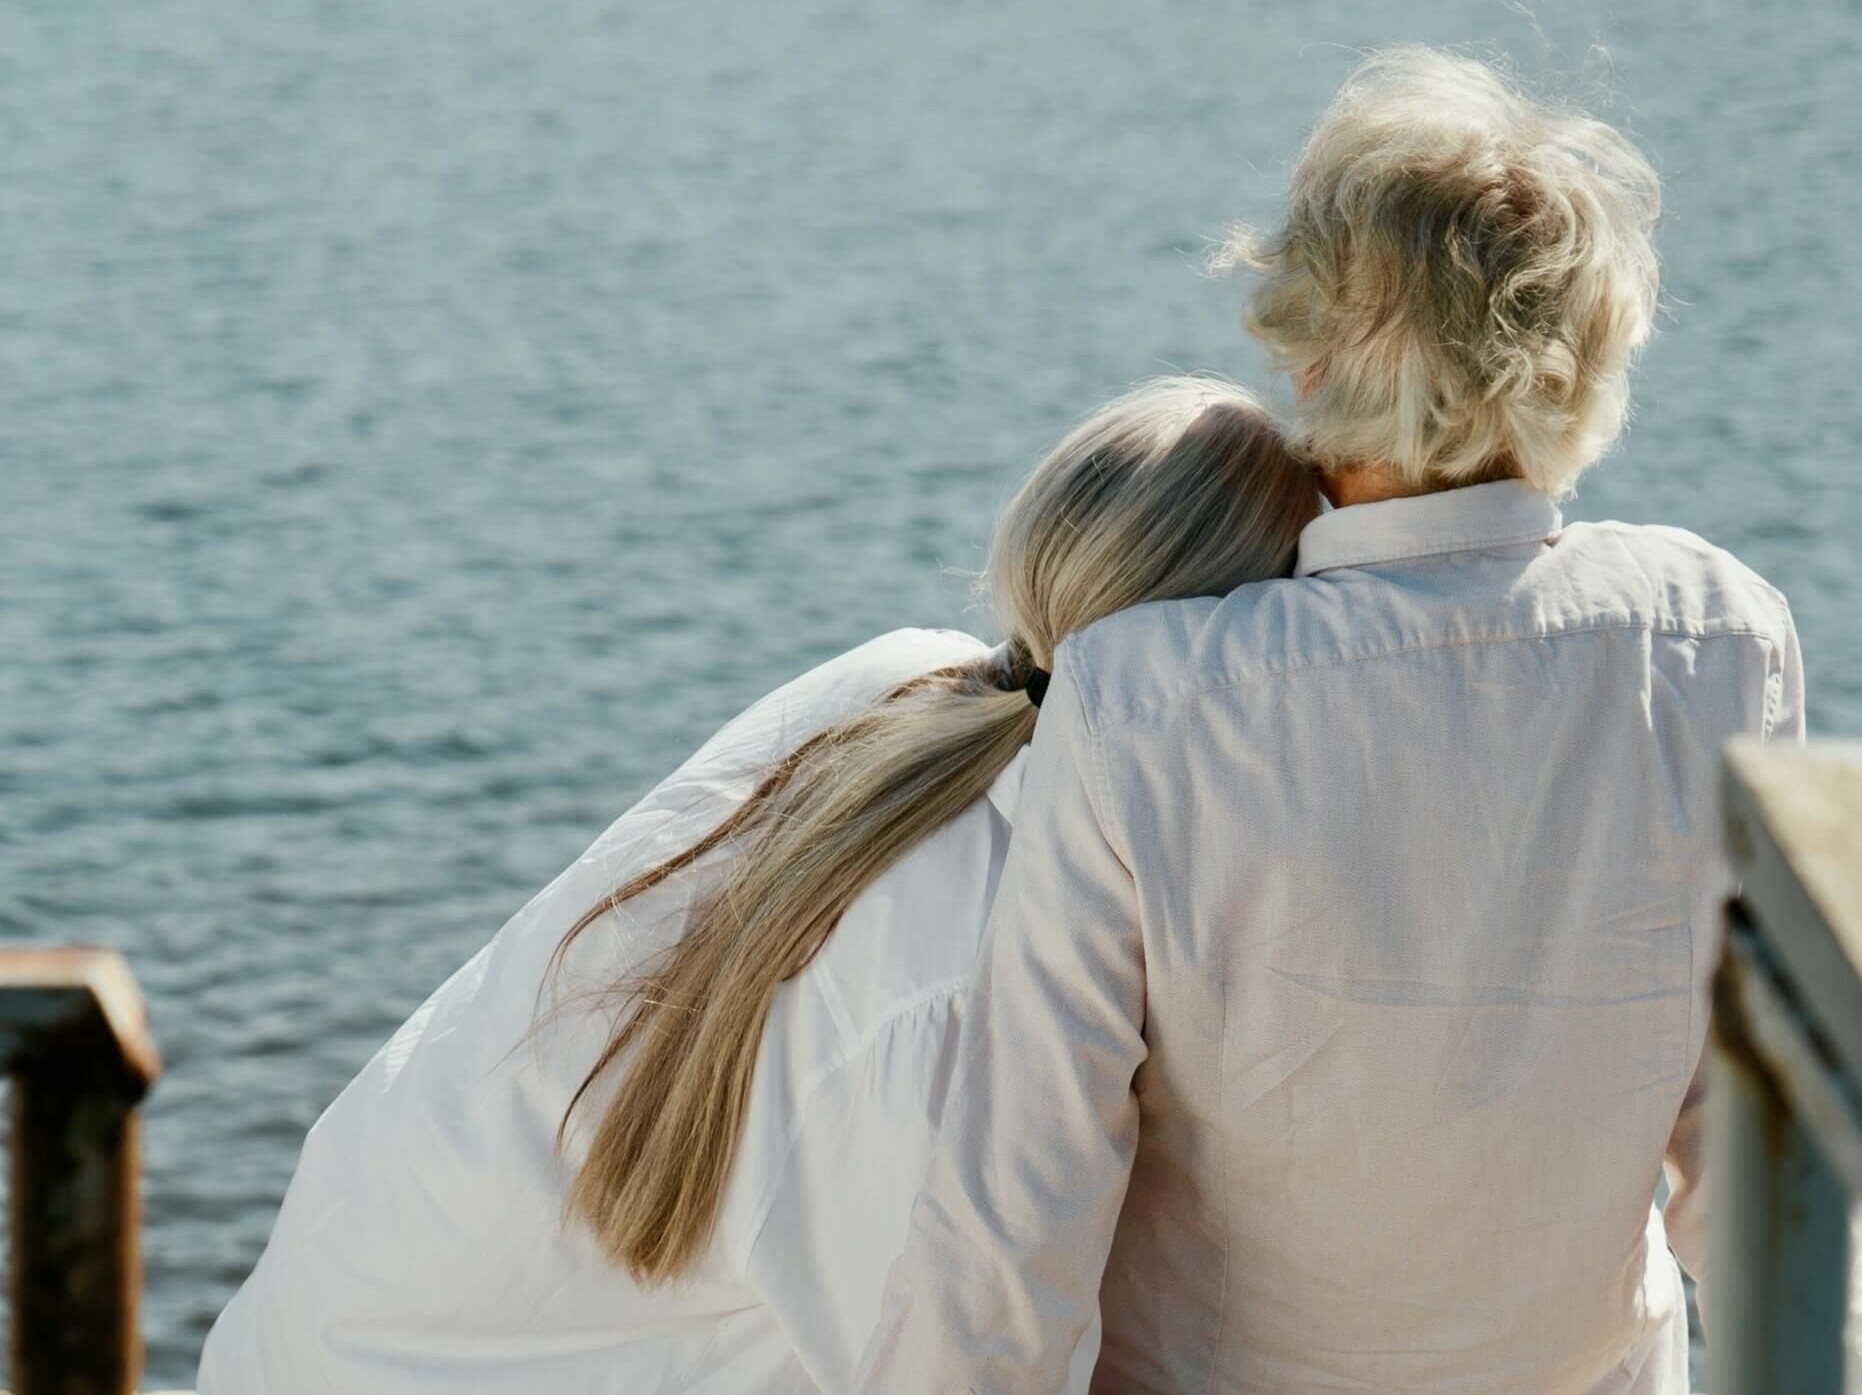 back view of older couple with grey hair embracing on a dock looking at the ocean